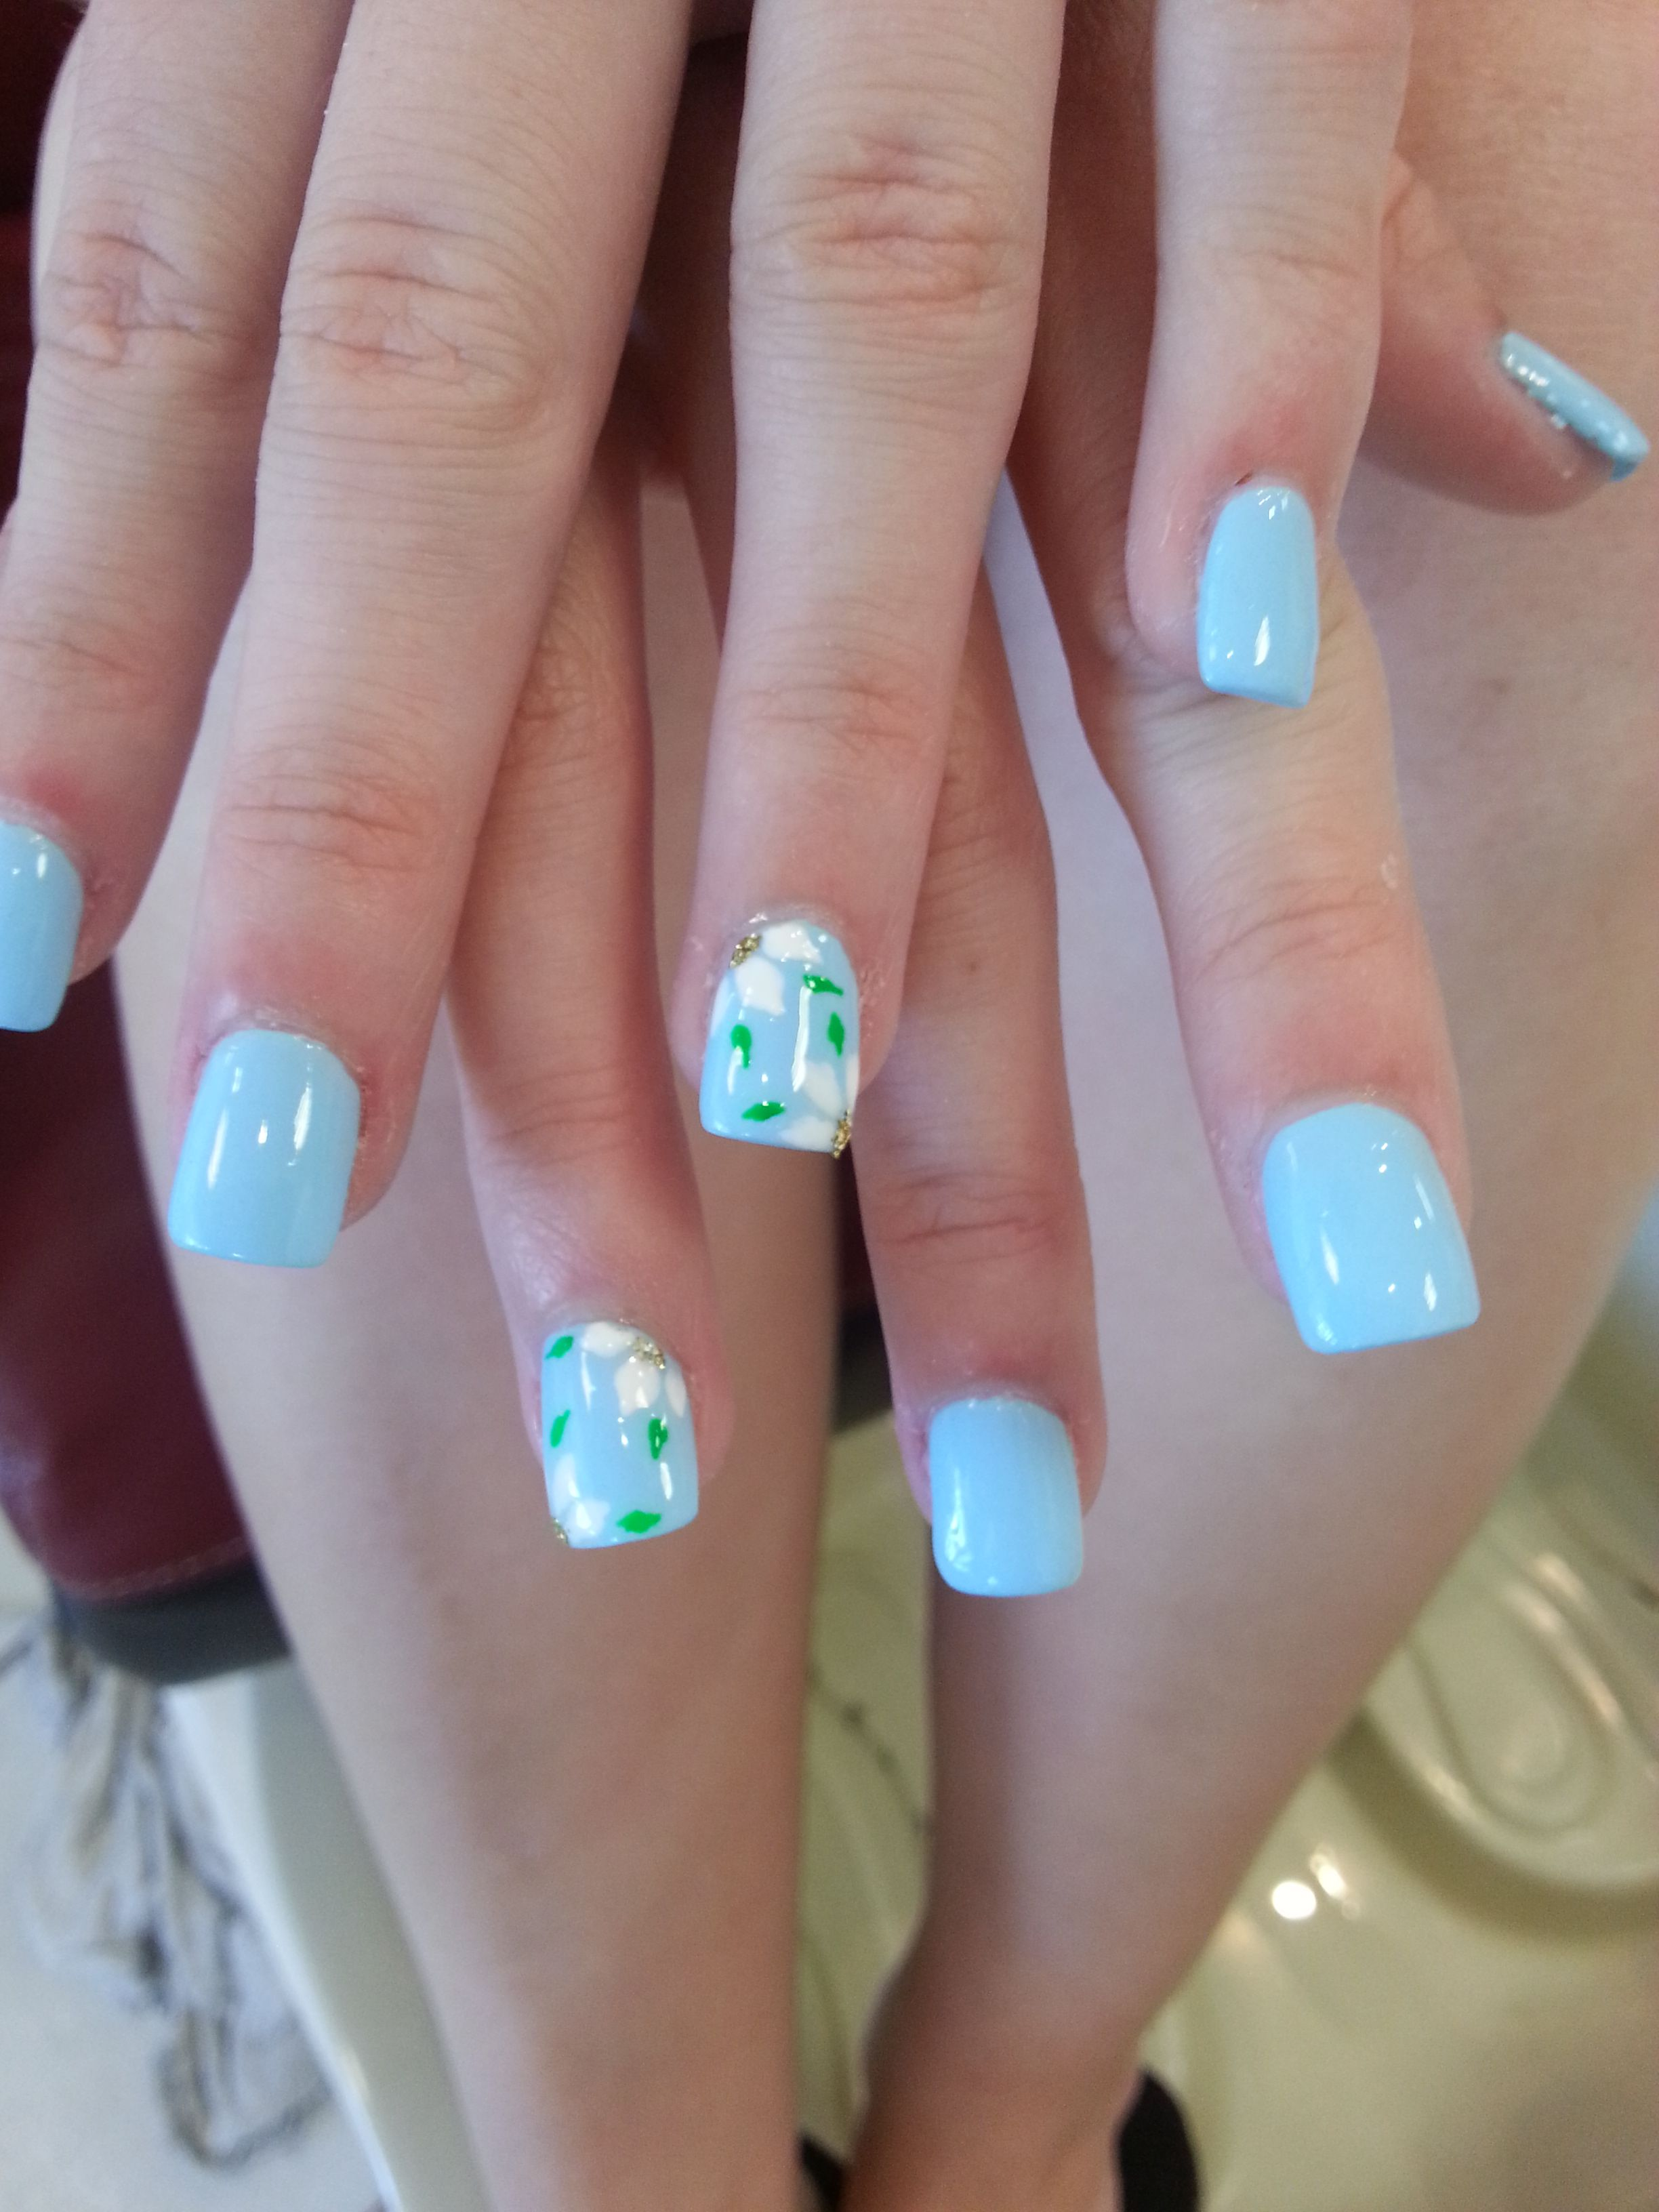 Acrylic Nails For Kid S Nails Kidsnails Flowernails Nails For Kids Nail Designs Summer Nail Art For Kids